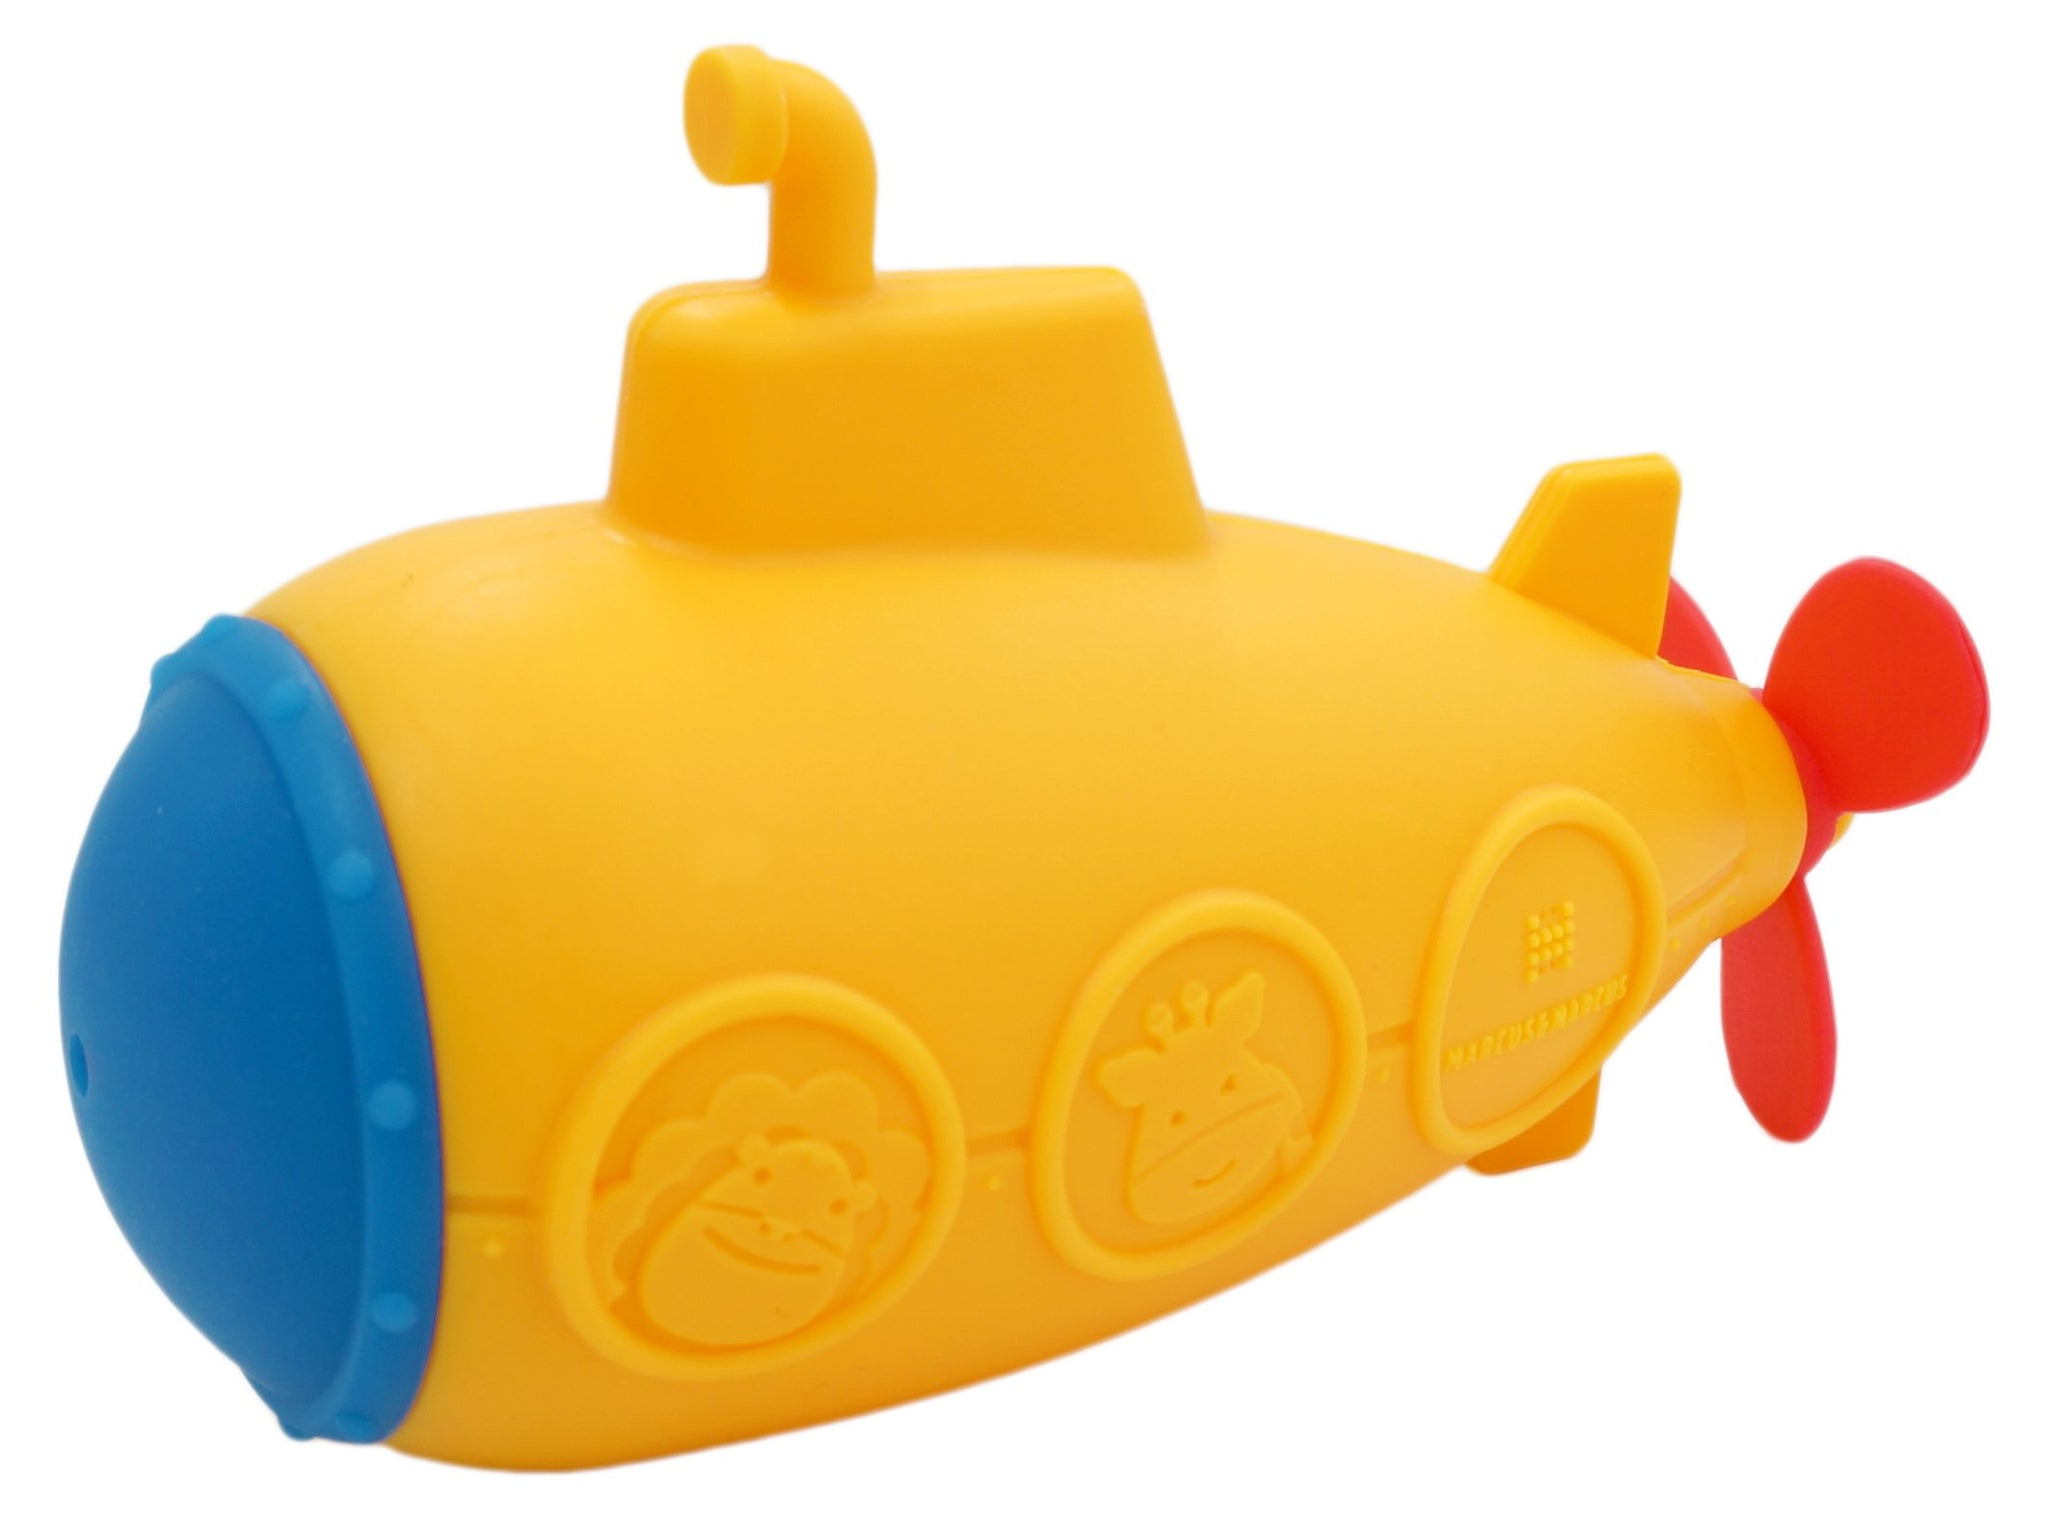 Safe Silicone and Mold Free Toy for Bath Time Submarine Marcus /& Marcus . Squirting Baby Bath Toy